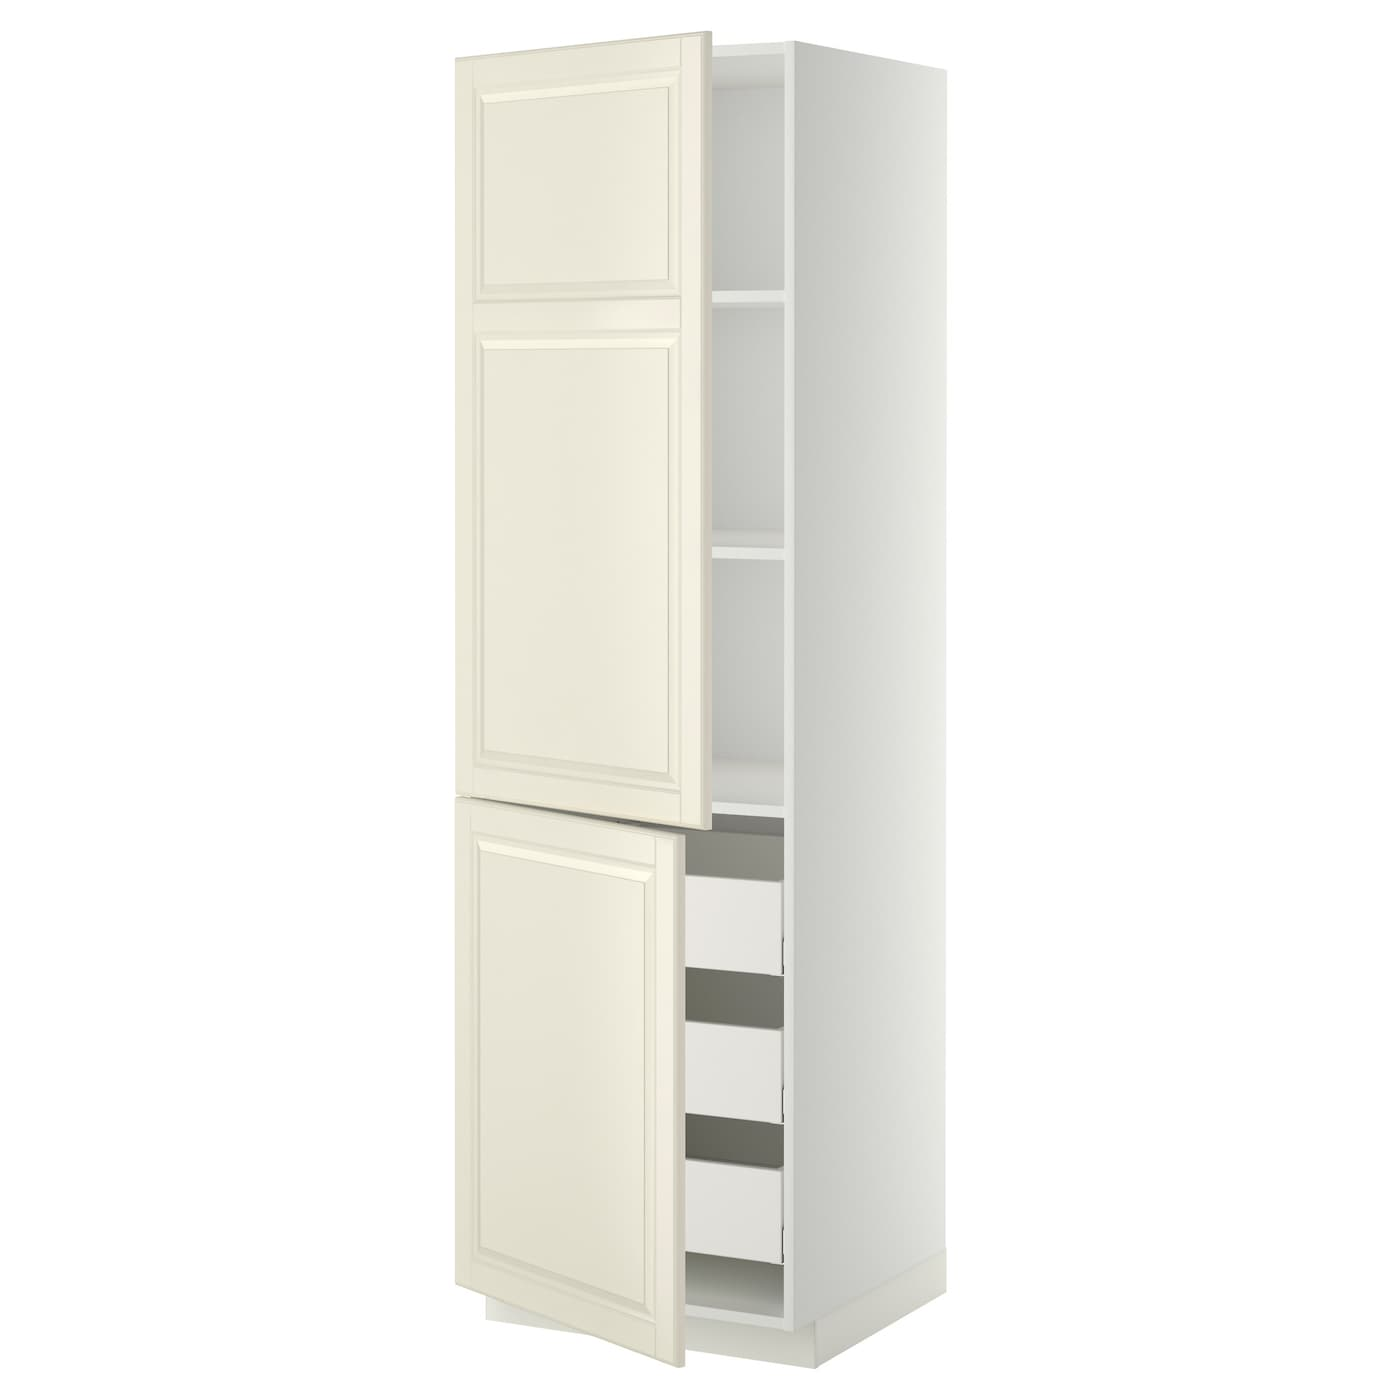 Larder Doors Ikea Ikea Pax Wardrobe Traditional Kitchen